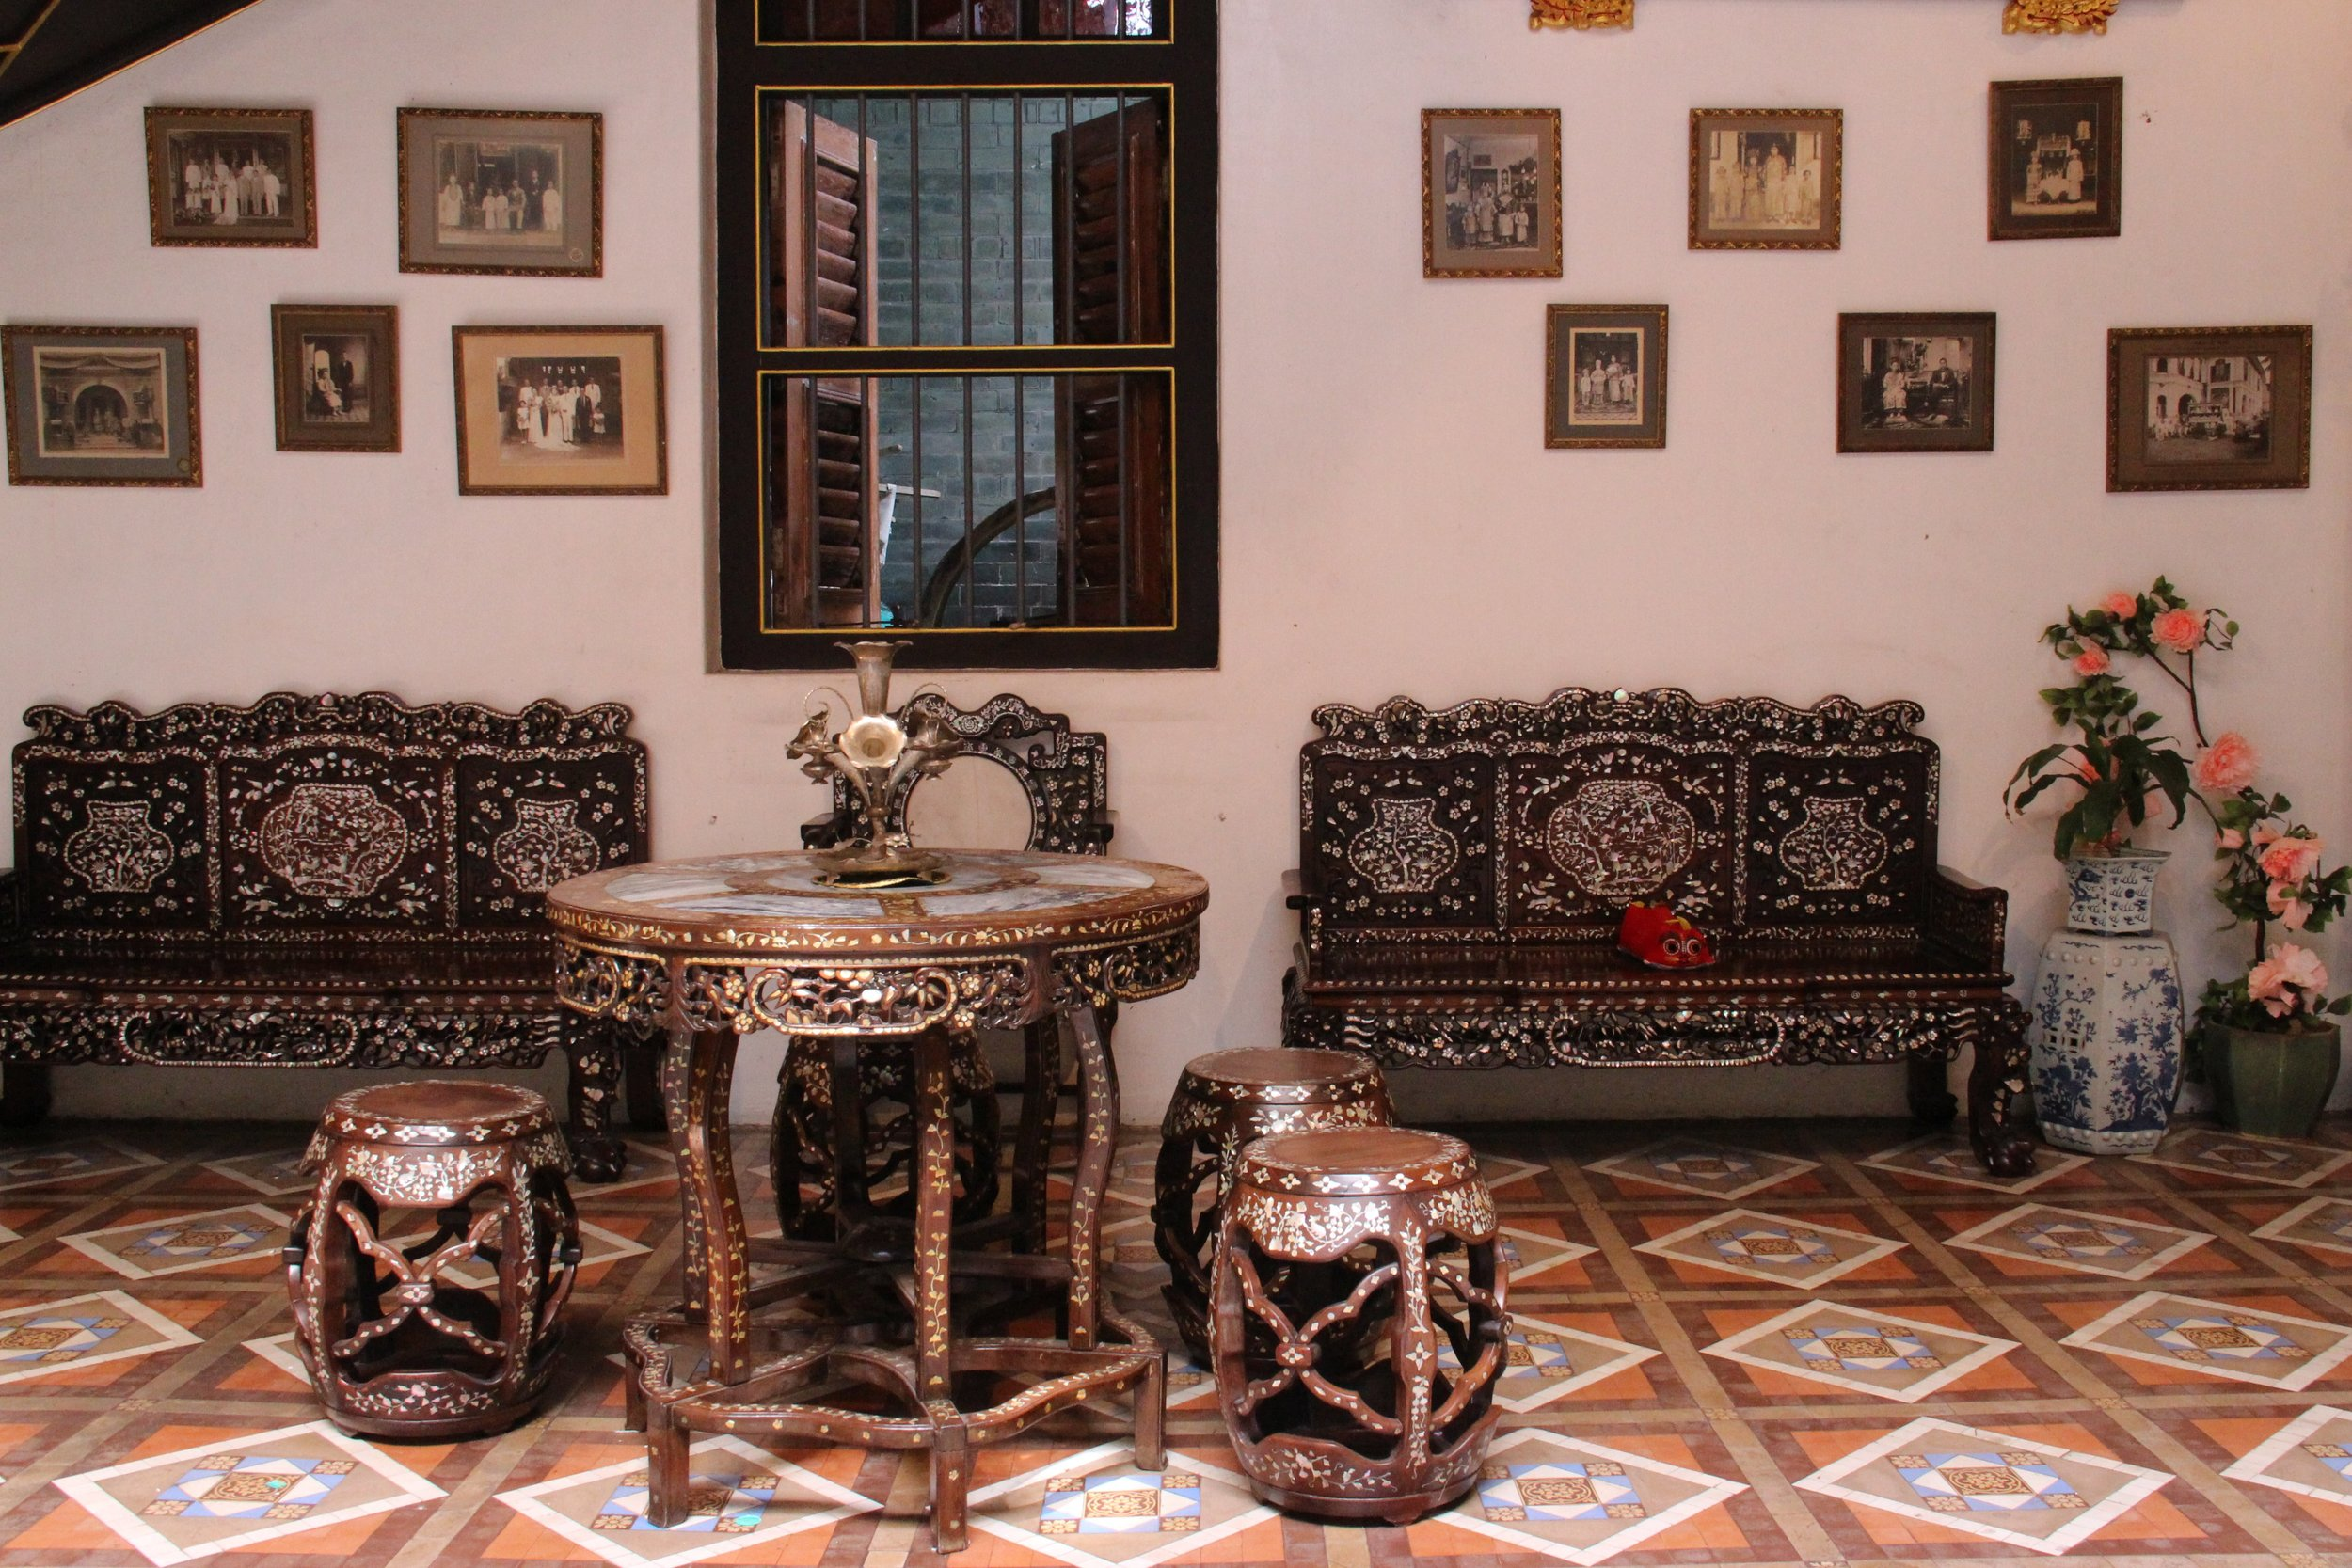 The Insides of a Peranakan Residence.